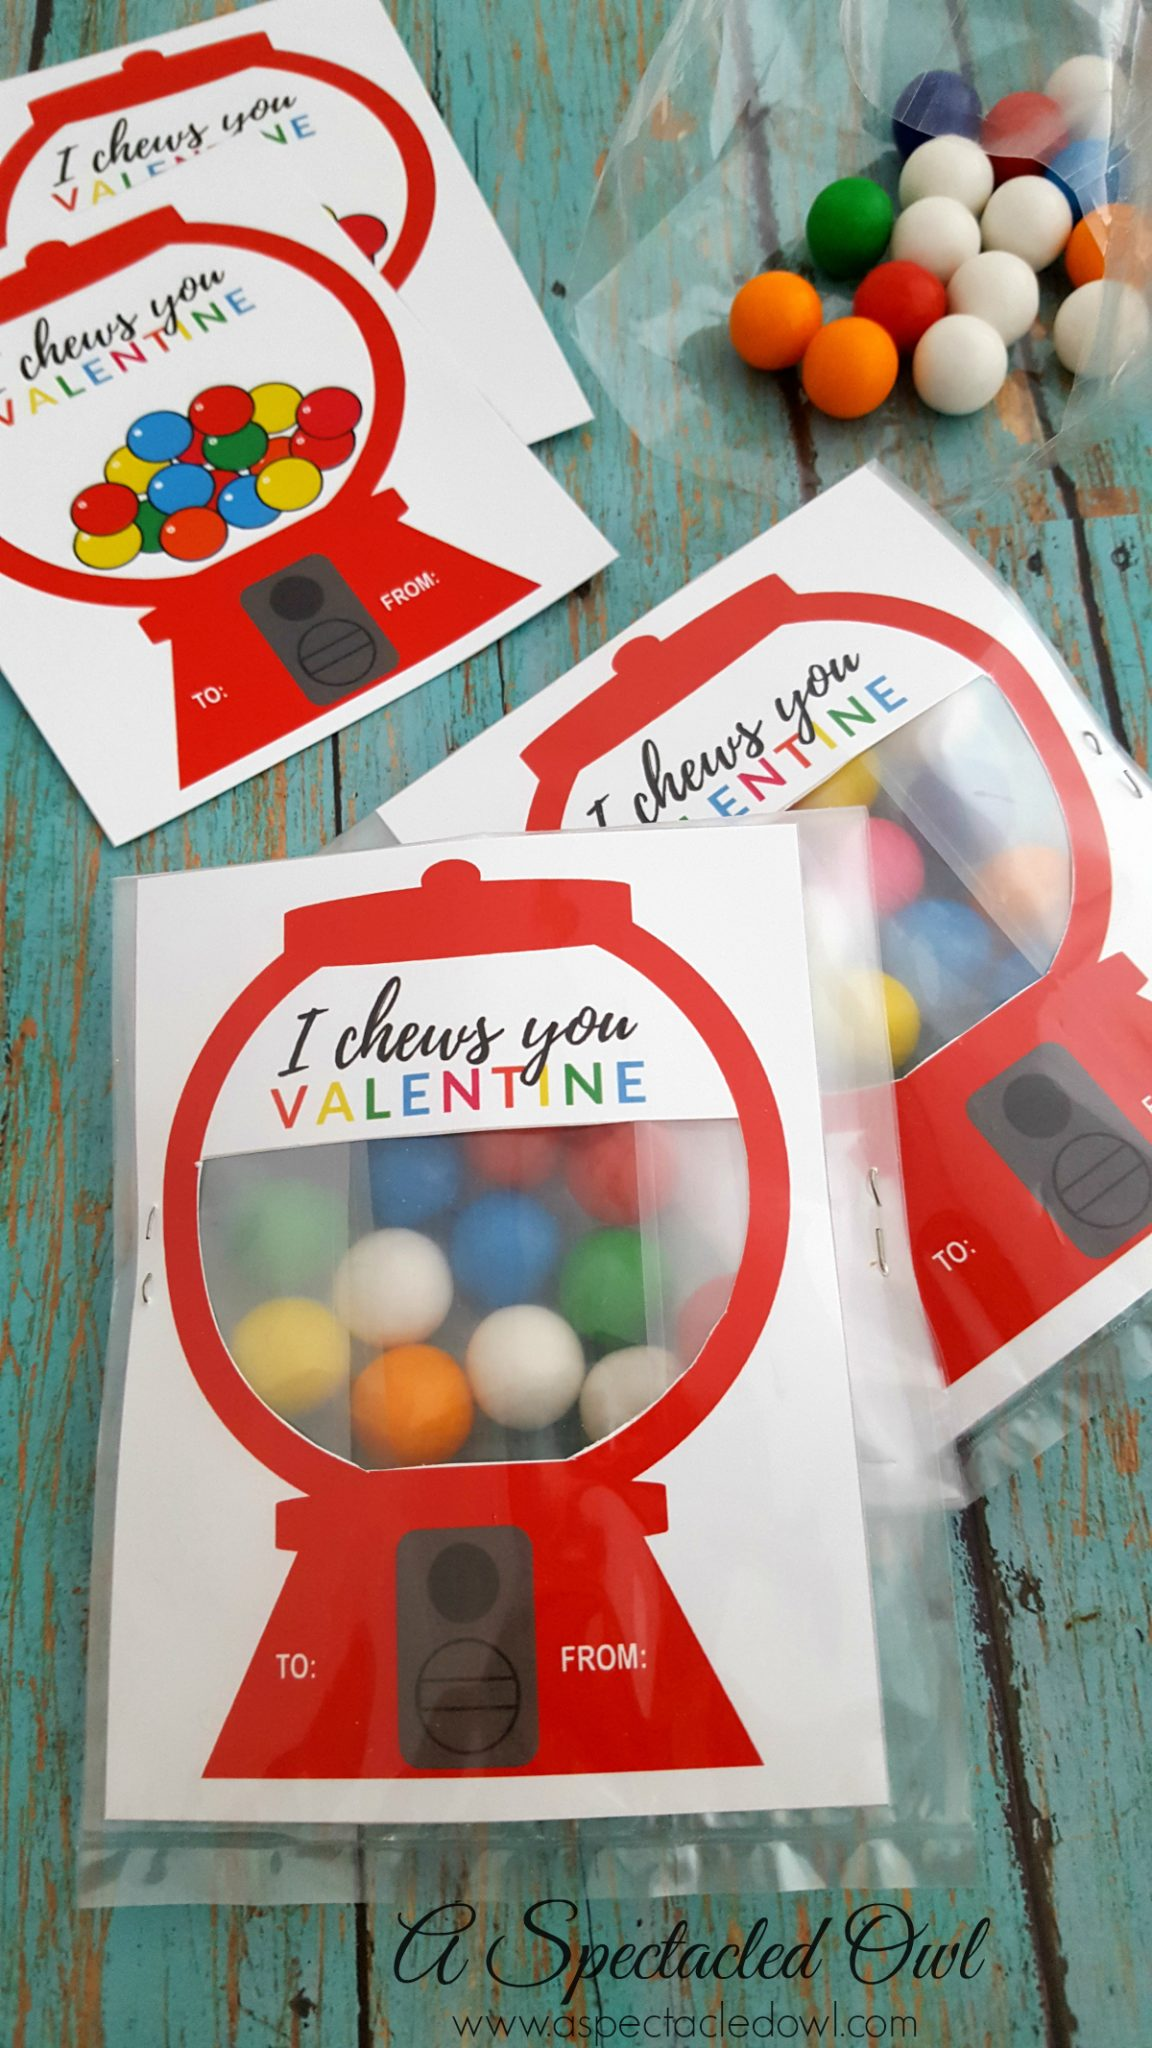 u0026quot i chews you u0026quot  gumball machine valentine u0026 39 s day card